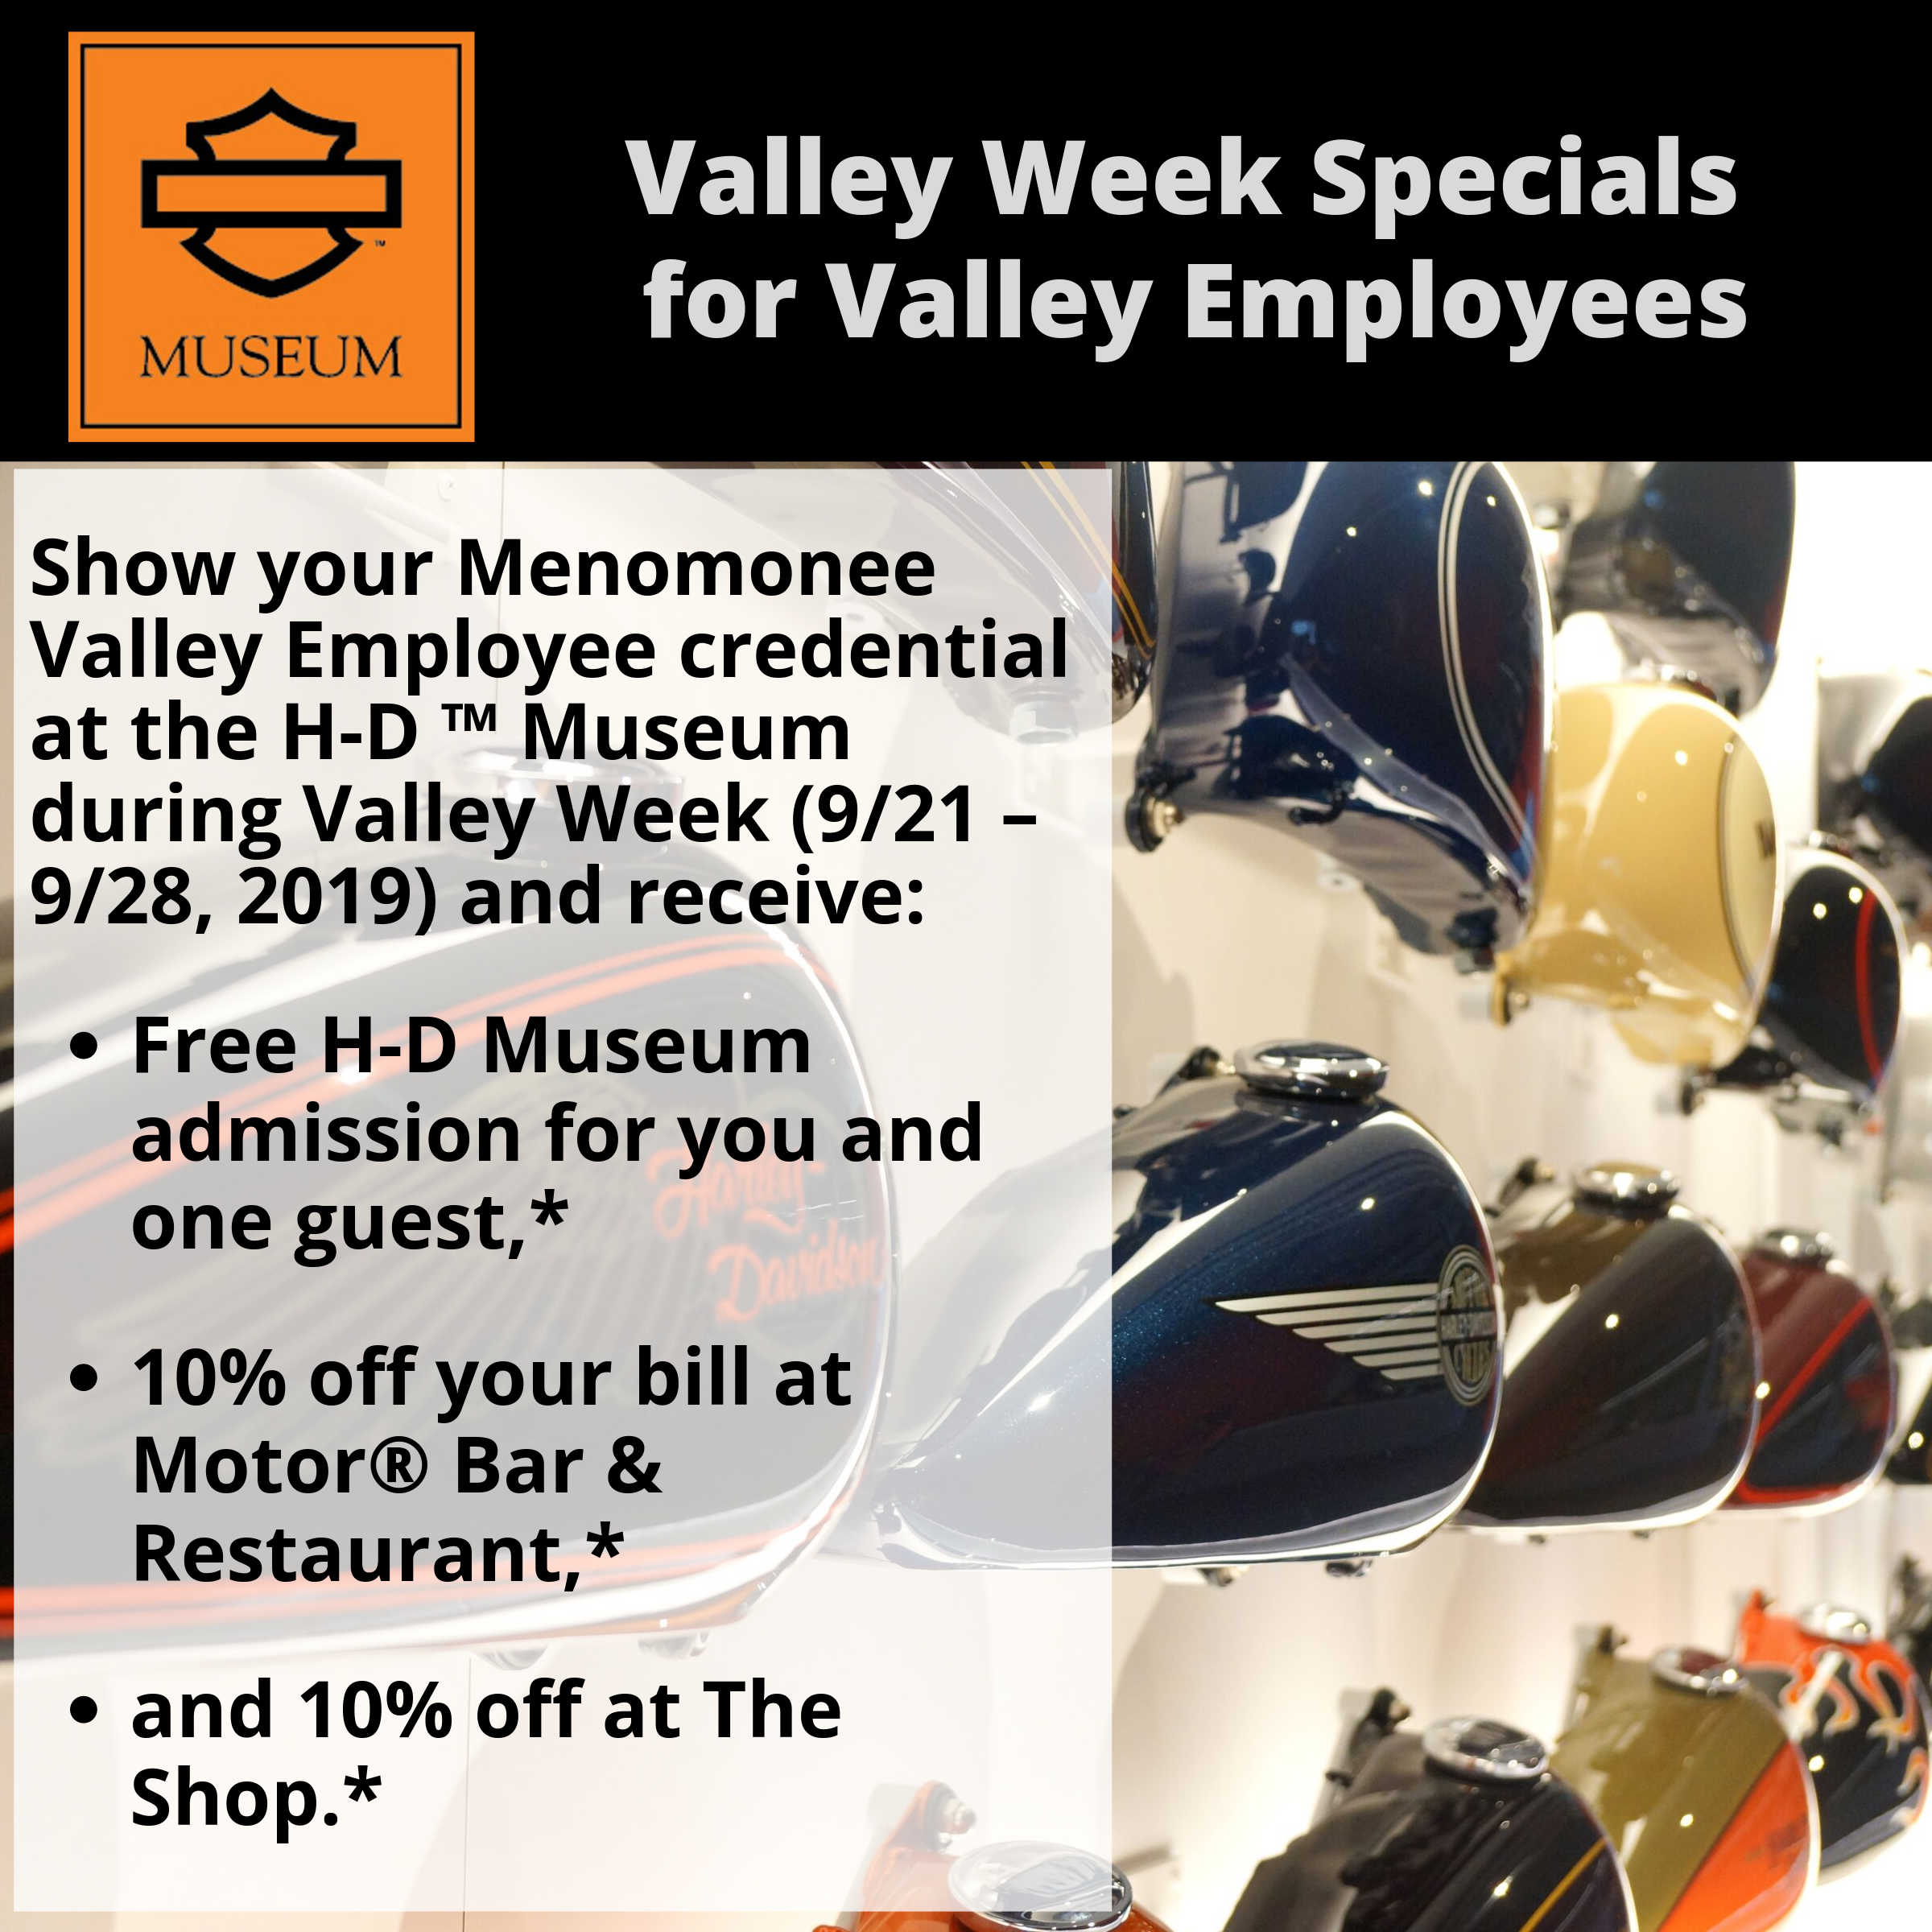 *10% off your bill at Motor® Bar & Restaurant before tax, 10% off your bill at the Shop and free admission for yourself and one guest during the 2019 Valley Week hosted by Menomonee Valley Partners September 21-28, 2019. Cannot be redeemed for cash or cash equivalent. Offer not valid on previous visits. Cannot be combined with any other offer, discount or promotion. Offer can be changed at any time without notice. Void where prohibited or restricted by law. © 2019 H-D or its affiliates. Harley-Davidson, H-D, Harley, Harley-Davidson Museum and the Bar & Shield Logo are among the trademarks of H-D U.S.A., LLC. Third-party trademarks are the property of their respective owners